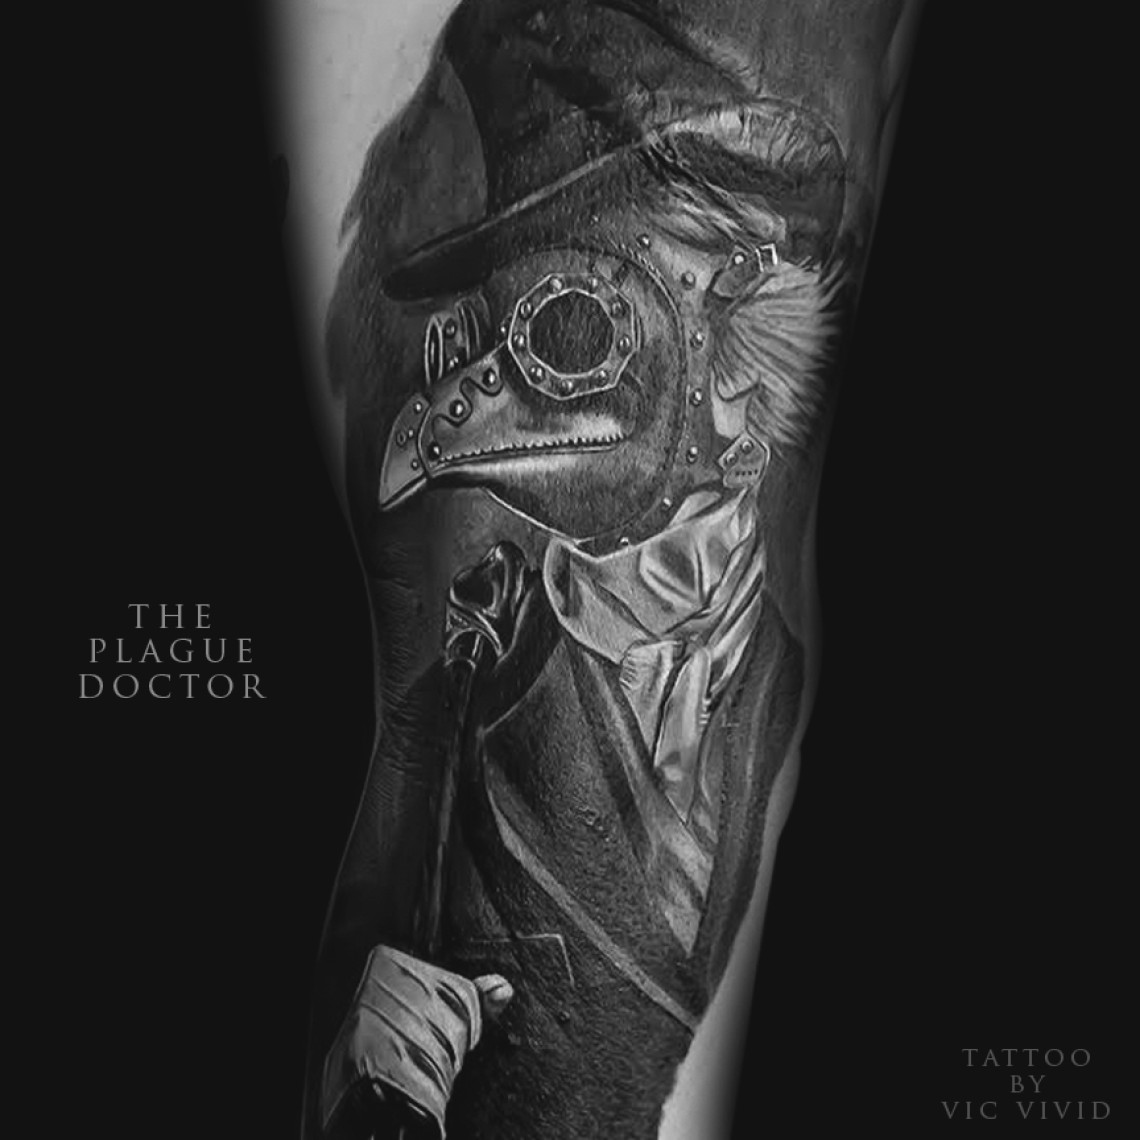 the-plague-doctor-1140x1140_c.jpg